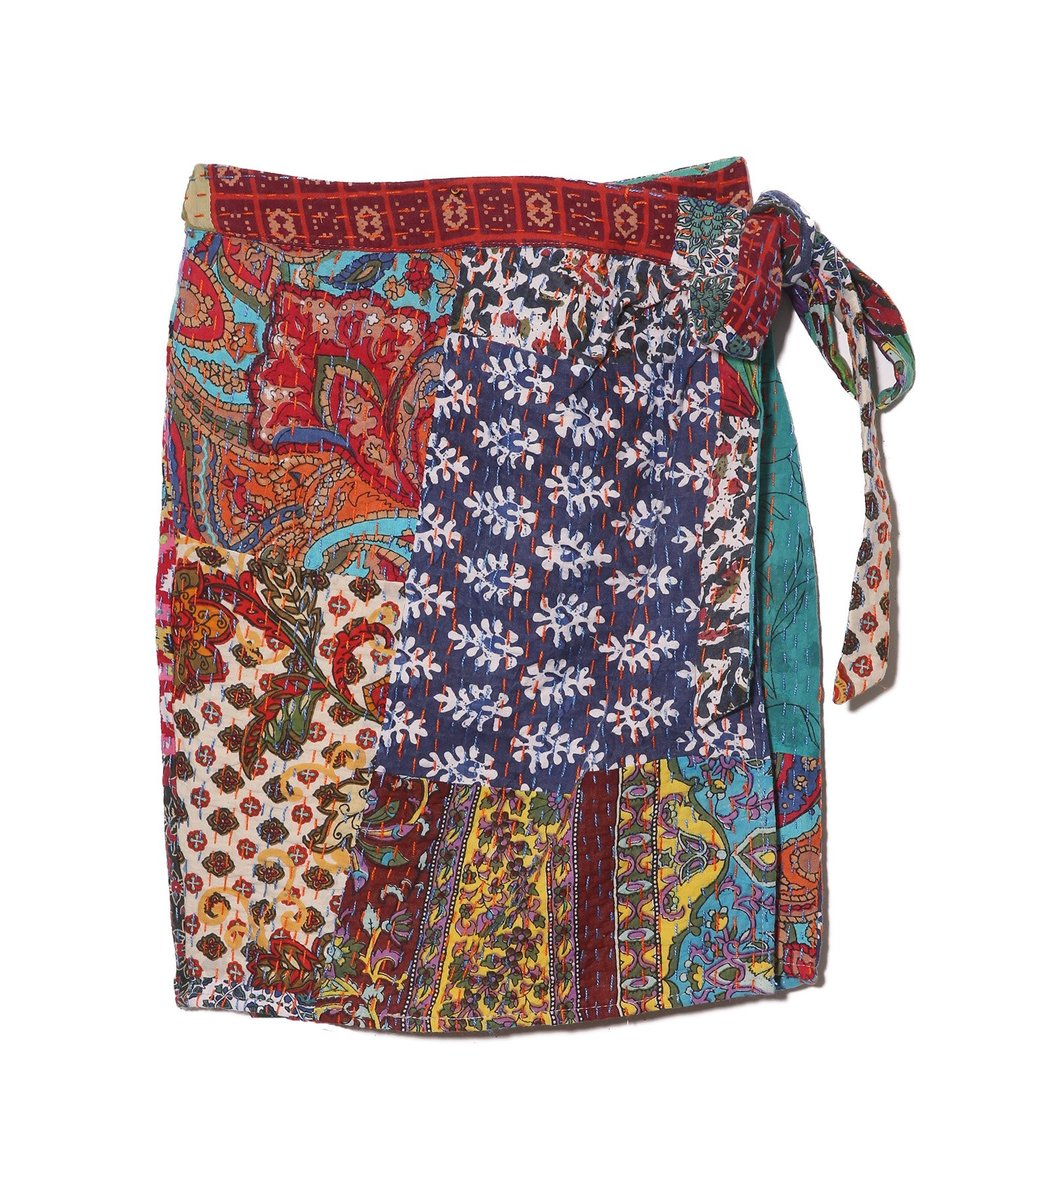 Ciao Lucia Ponza Skirt in Patchwork